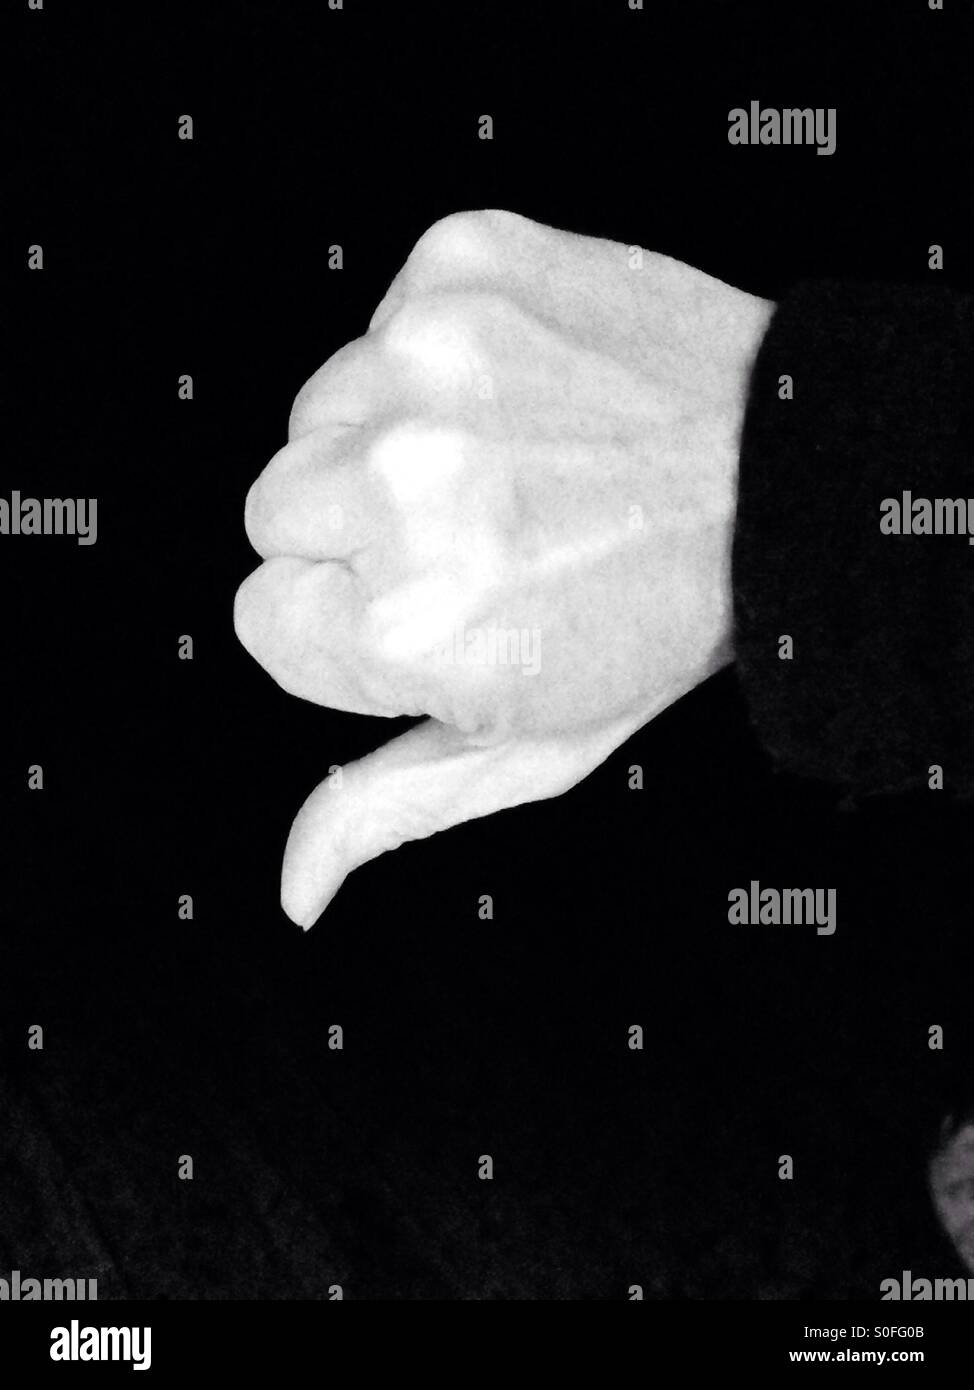 Thumbs down in black and white - Stock Image